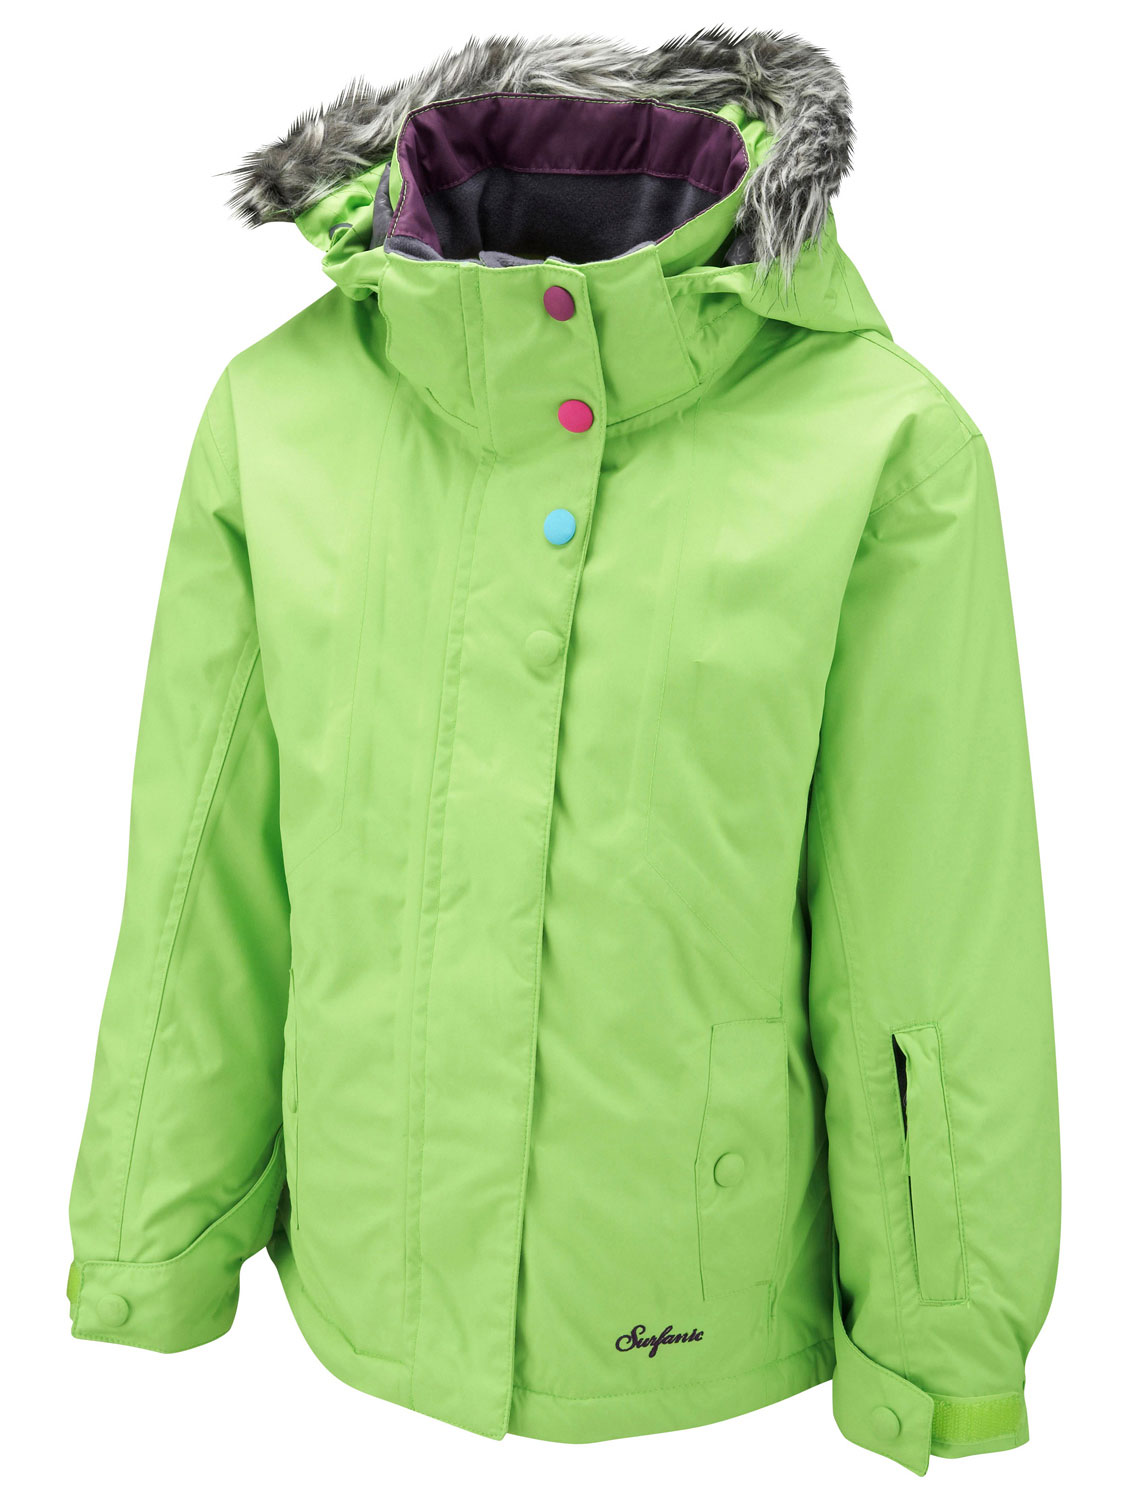 Protection from harsh winter weather is a concern and these jackets and coats are all designed to make it easy for kids to play outside with ease. For girls, look to jackets and coats inspired by trends like moto jackets and streamlined puffer coats.